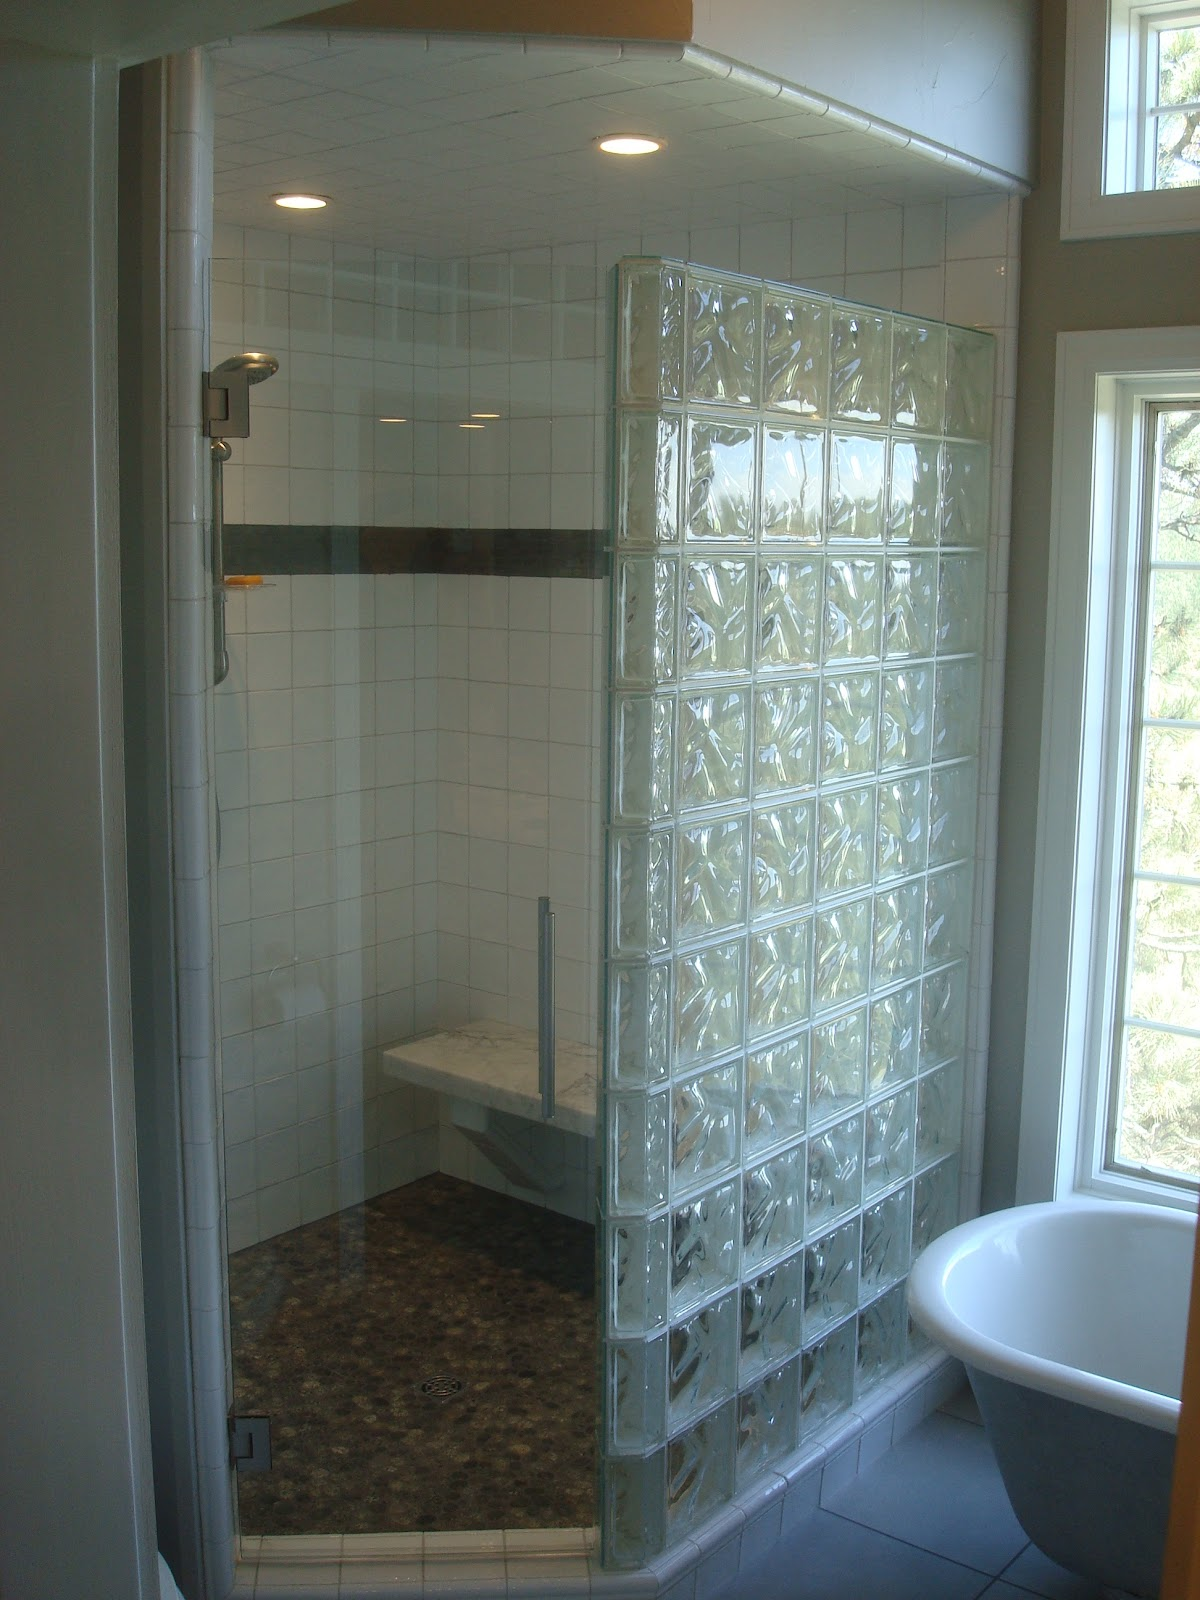 HYDRO-BLOK--The BETTER Shower System Is Here!! | Seattle Glass Block